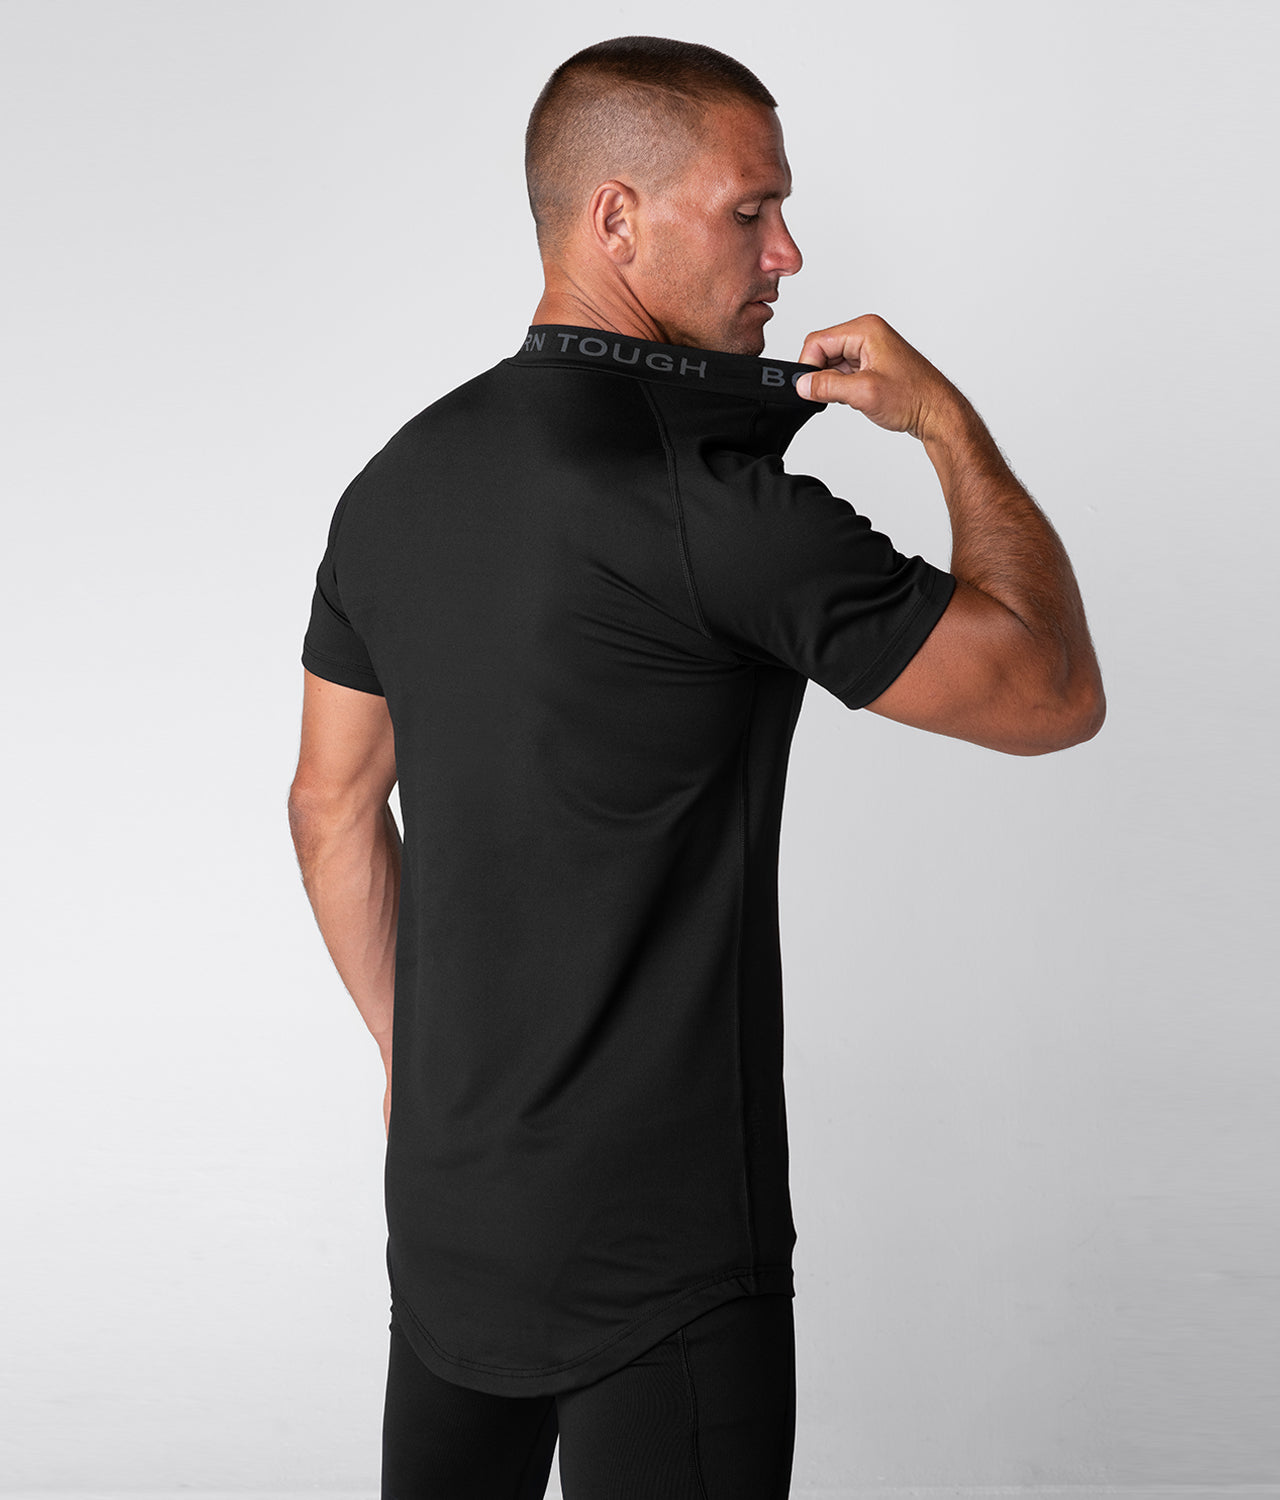 Born Tough Mock Neck Extended curve hem  Short Sleeve Compression Gym Workout Shirt For Men Black